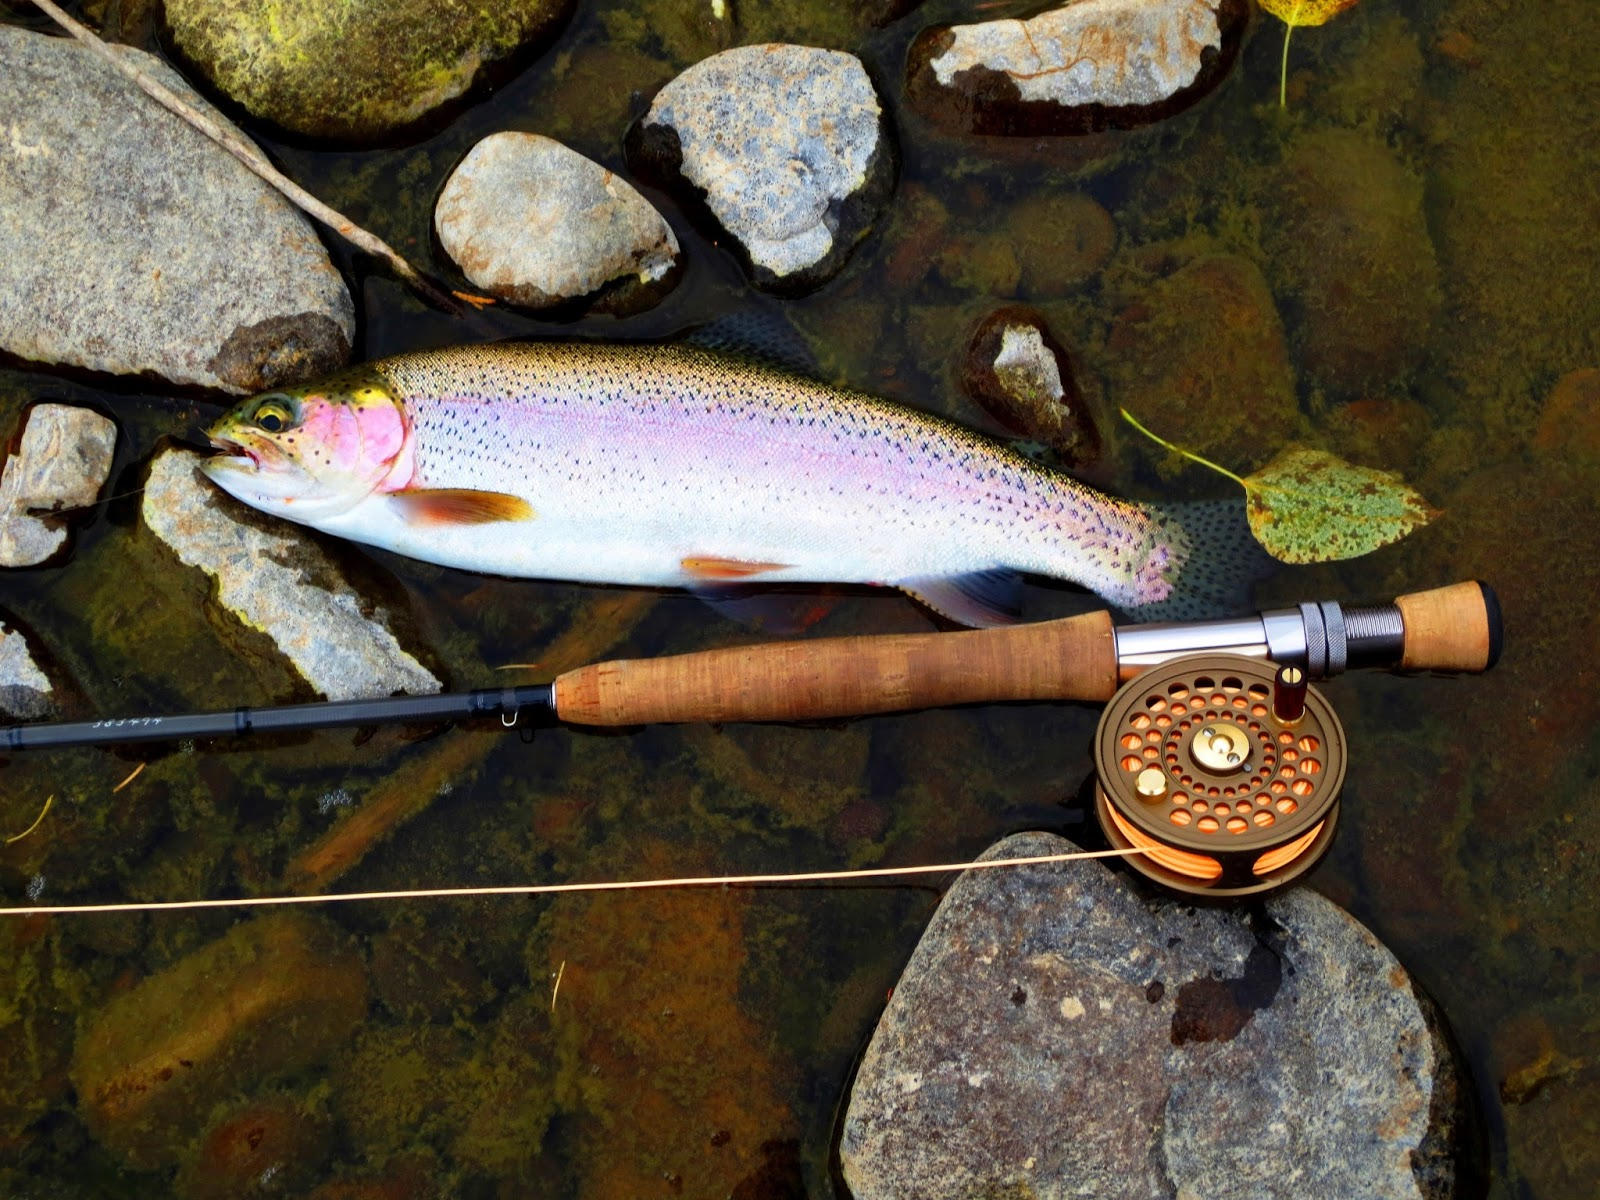 idaho fly fishers | idaho montana fishing | fly fishing trips, Fly Fishing Bait